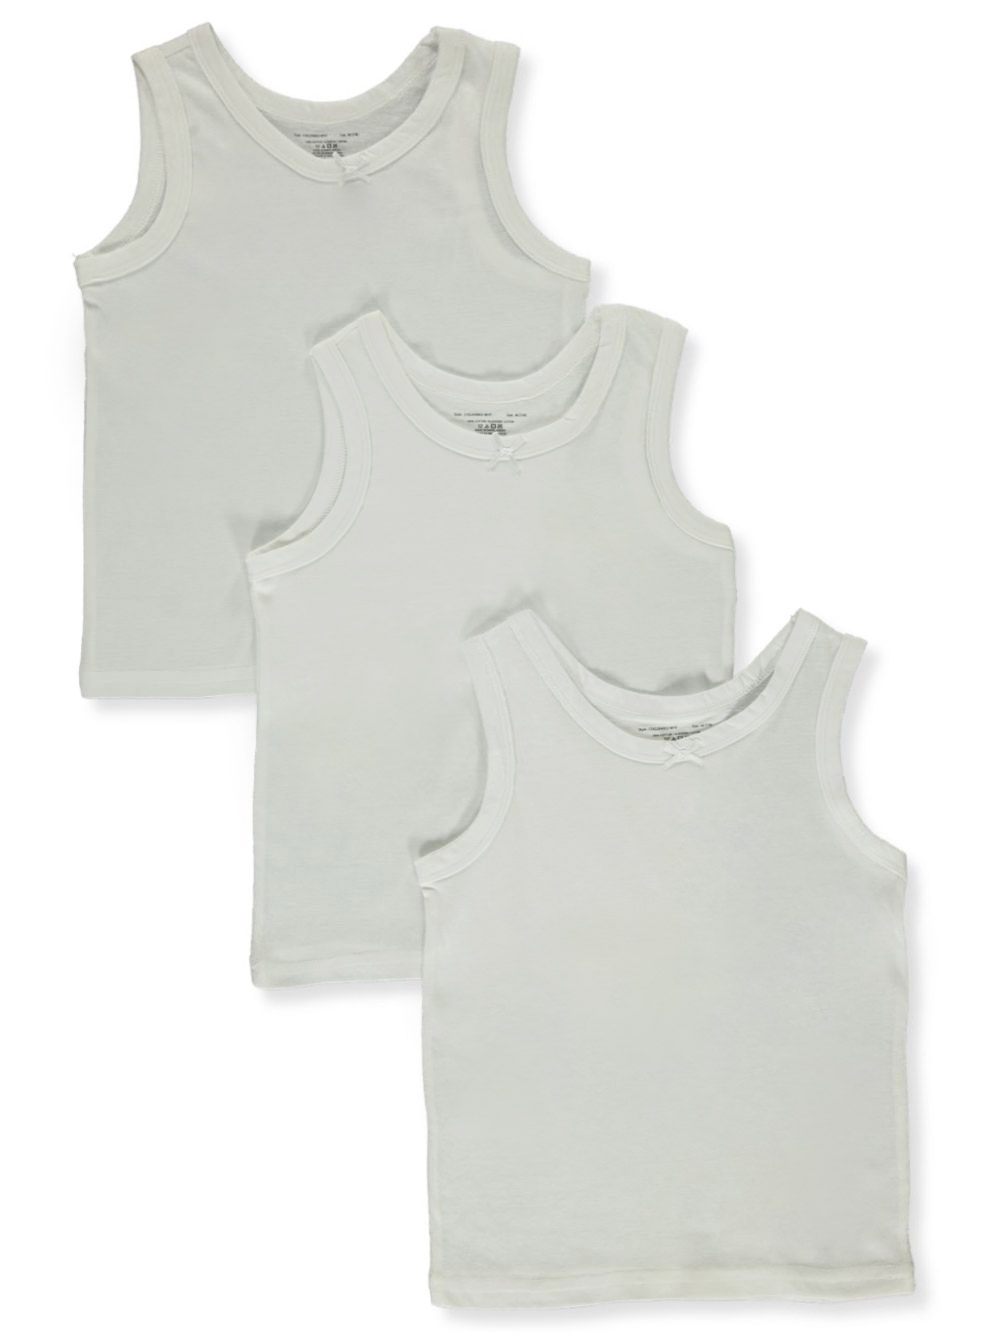 Undershirts 3-Pack Tank Tops